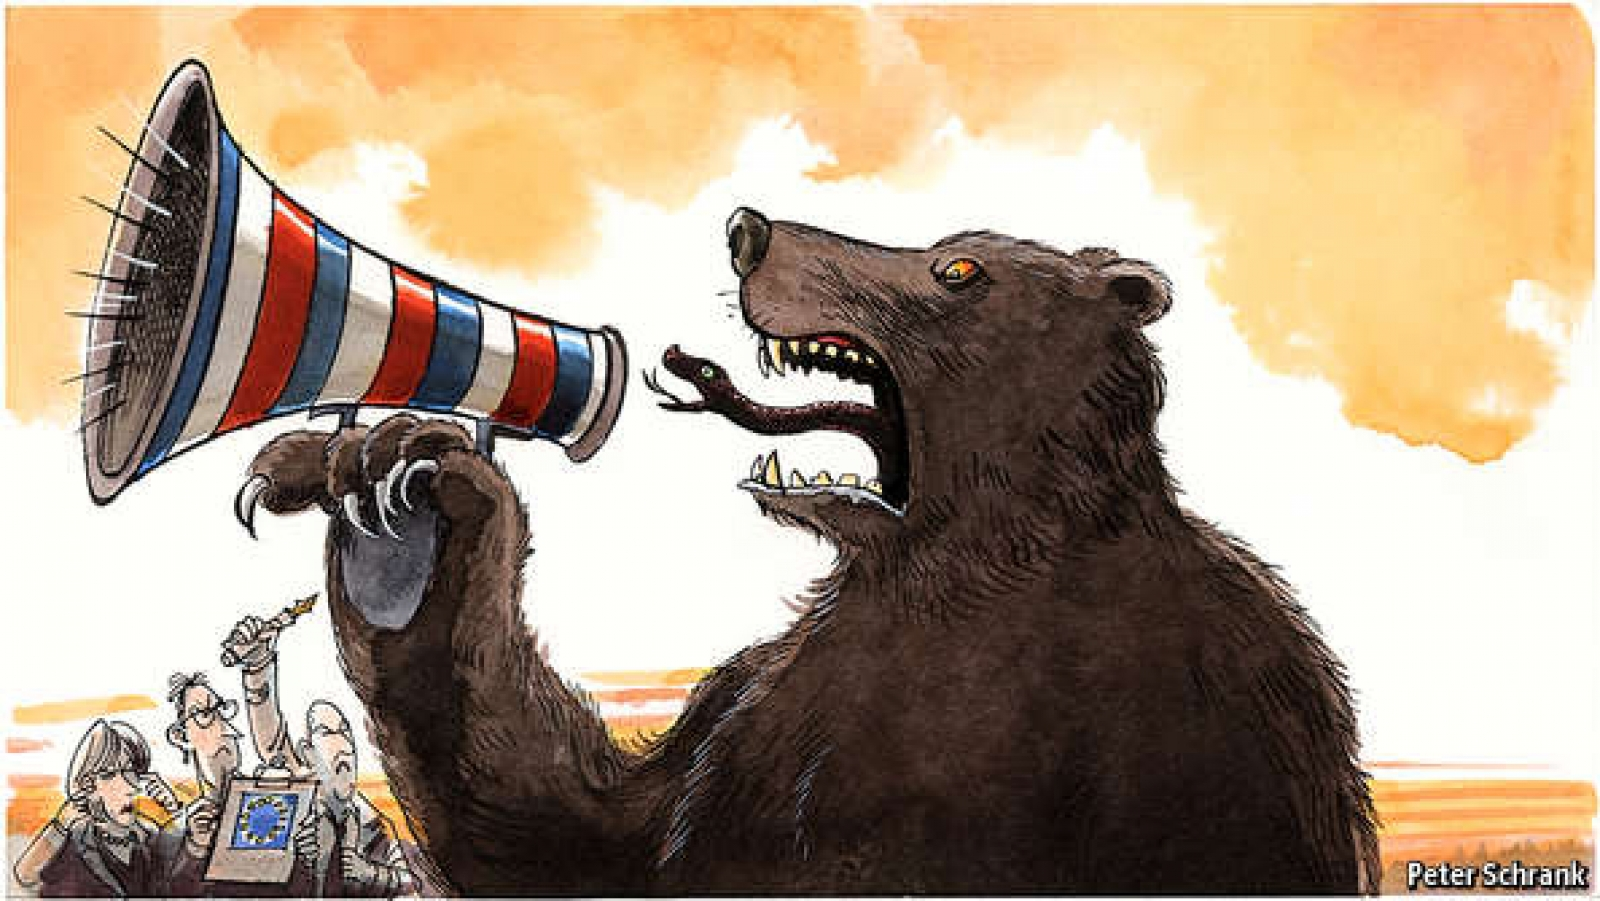 Europe is belatedly waking up to Russia's information warfare. (Peter Schrank/The Economist)